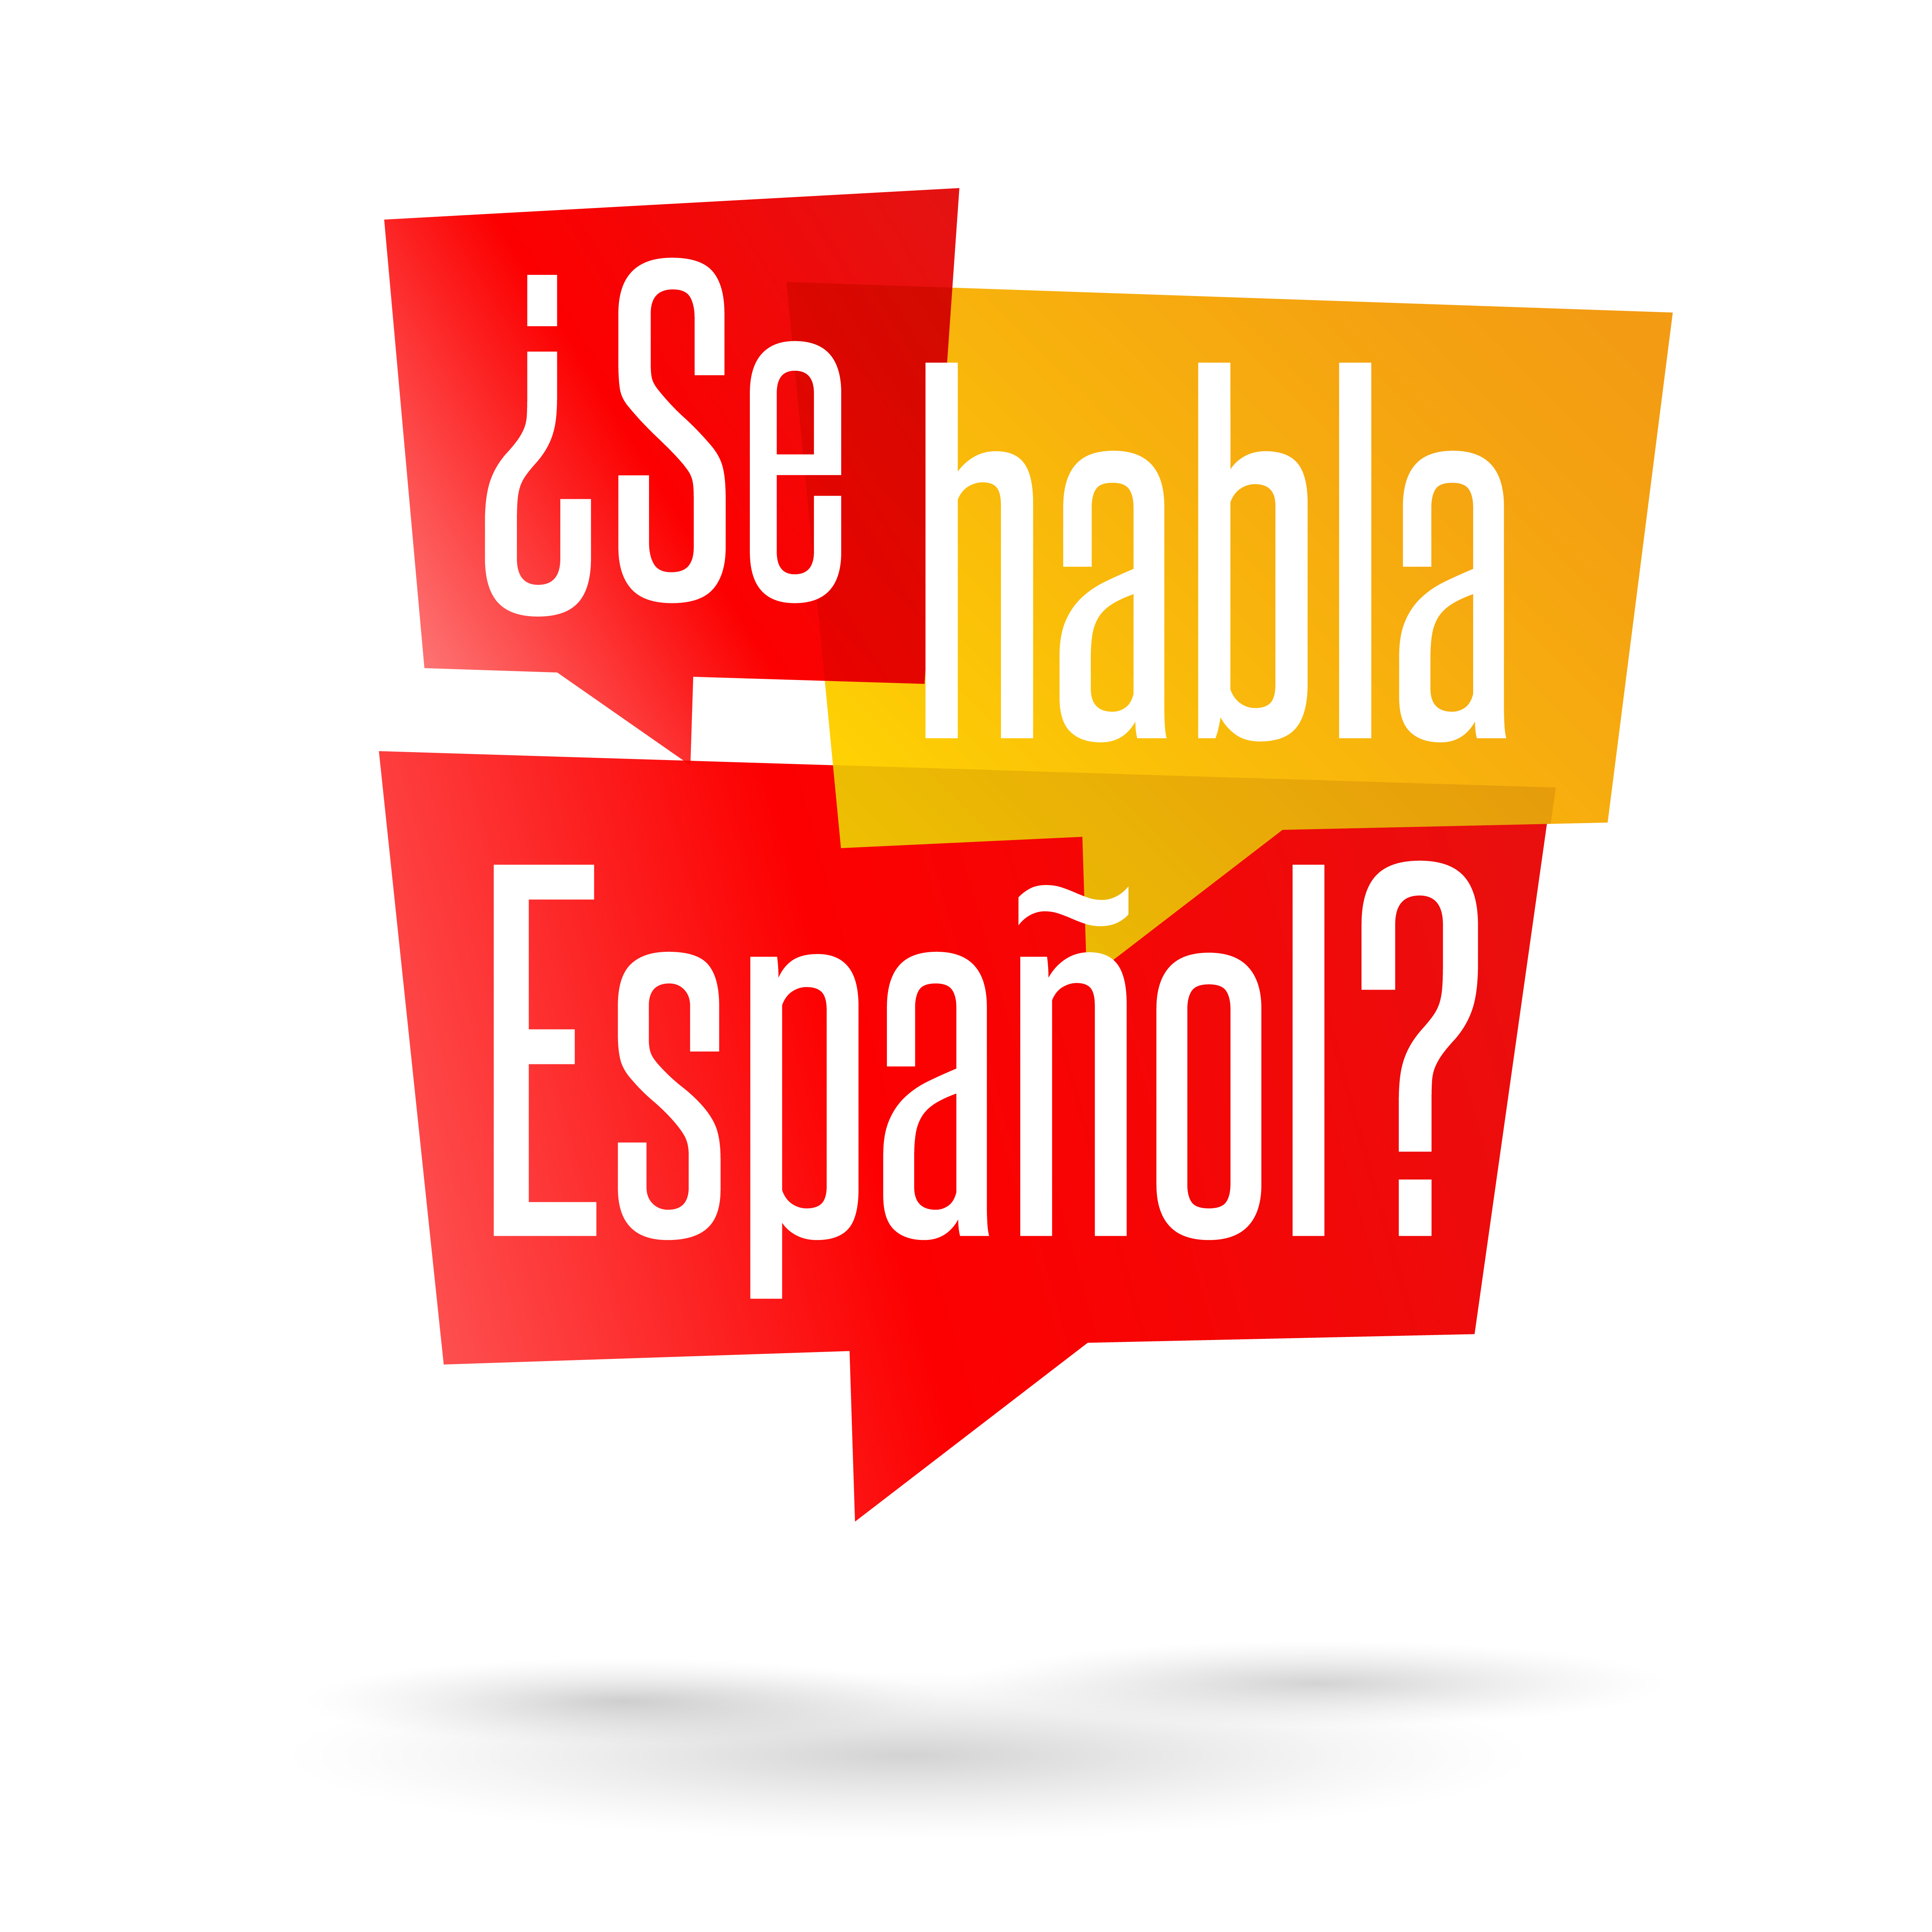 Learning Spanish Png - For Many, Learning Spanish Is Rapidly Be #41658 - PNG Images - PNGio